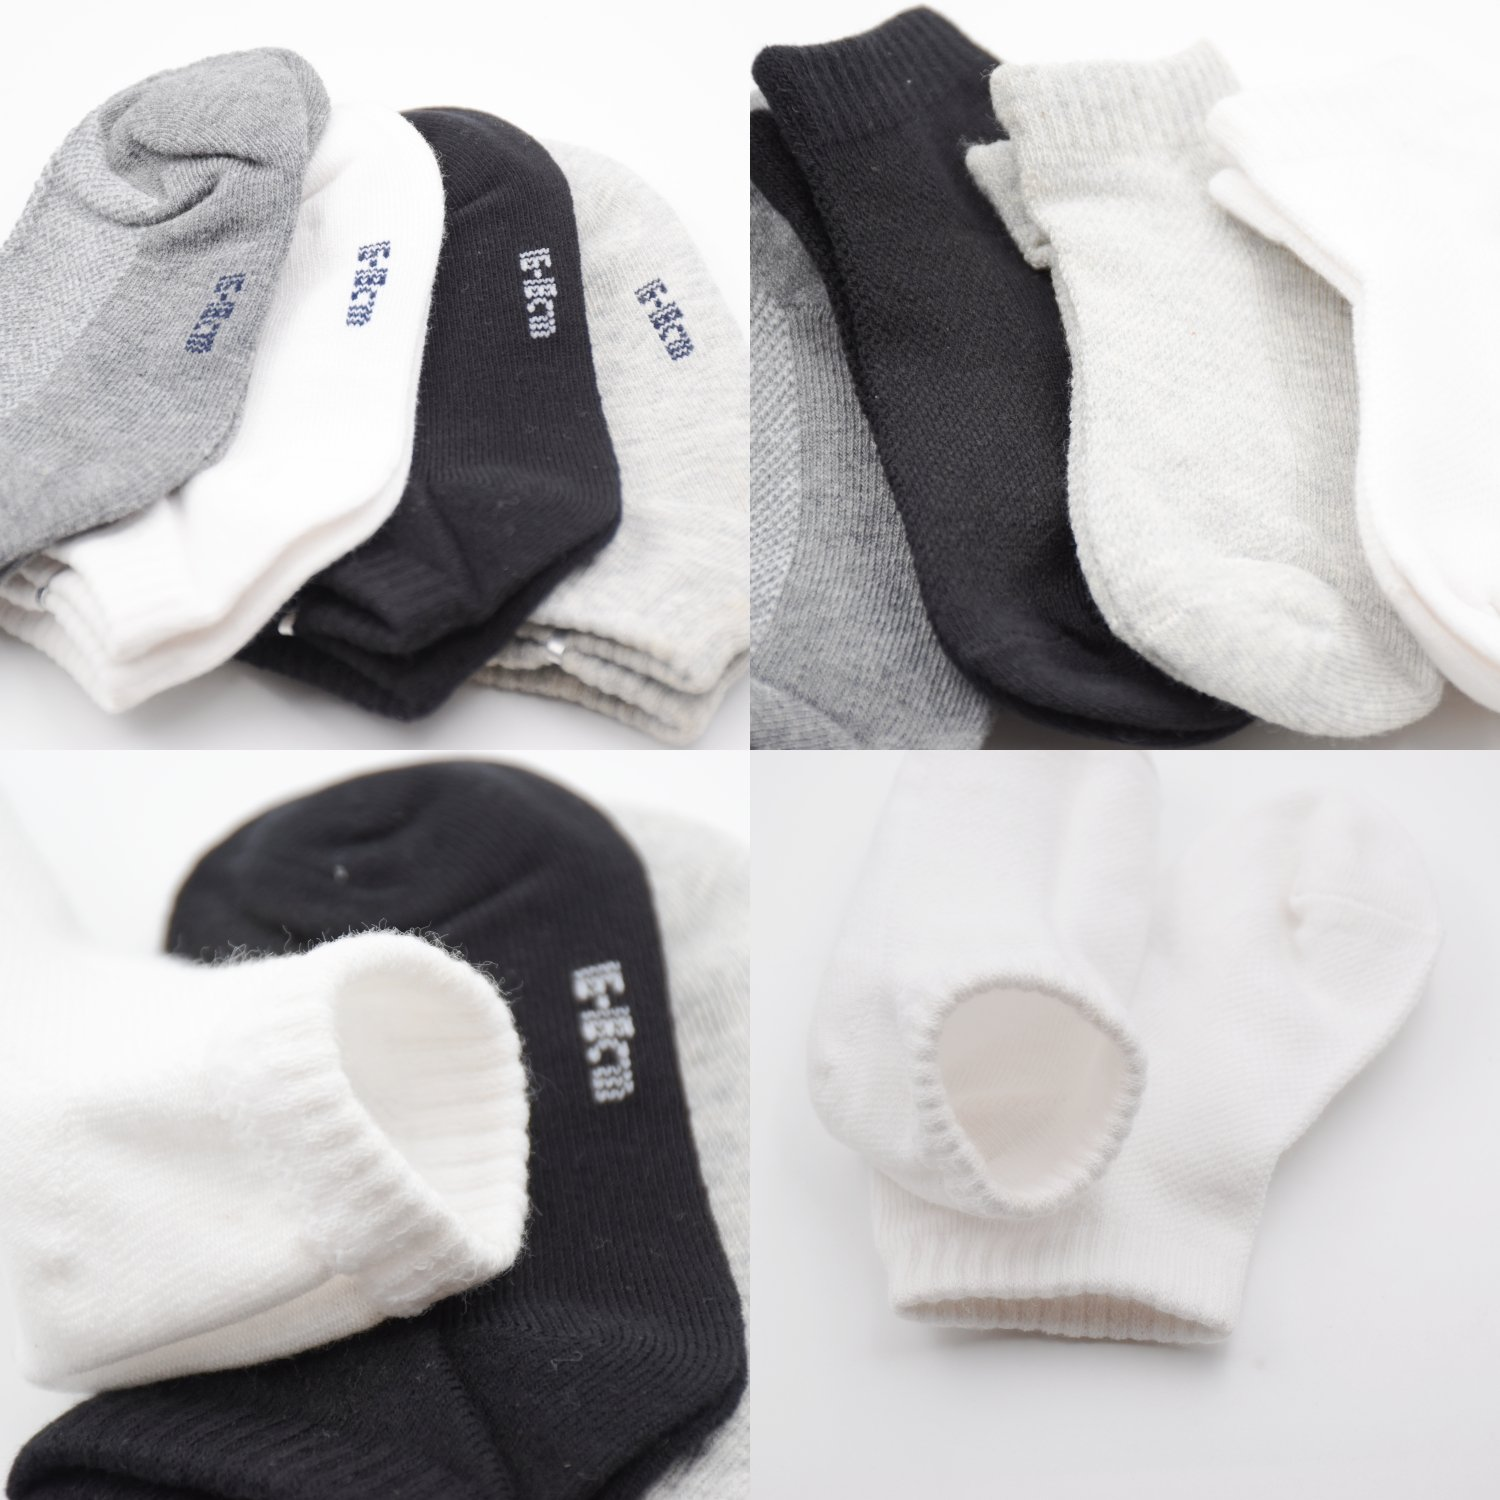 Vearin Boys Toddler 4-Pack Sports Ankle Socks